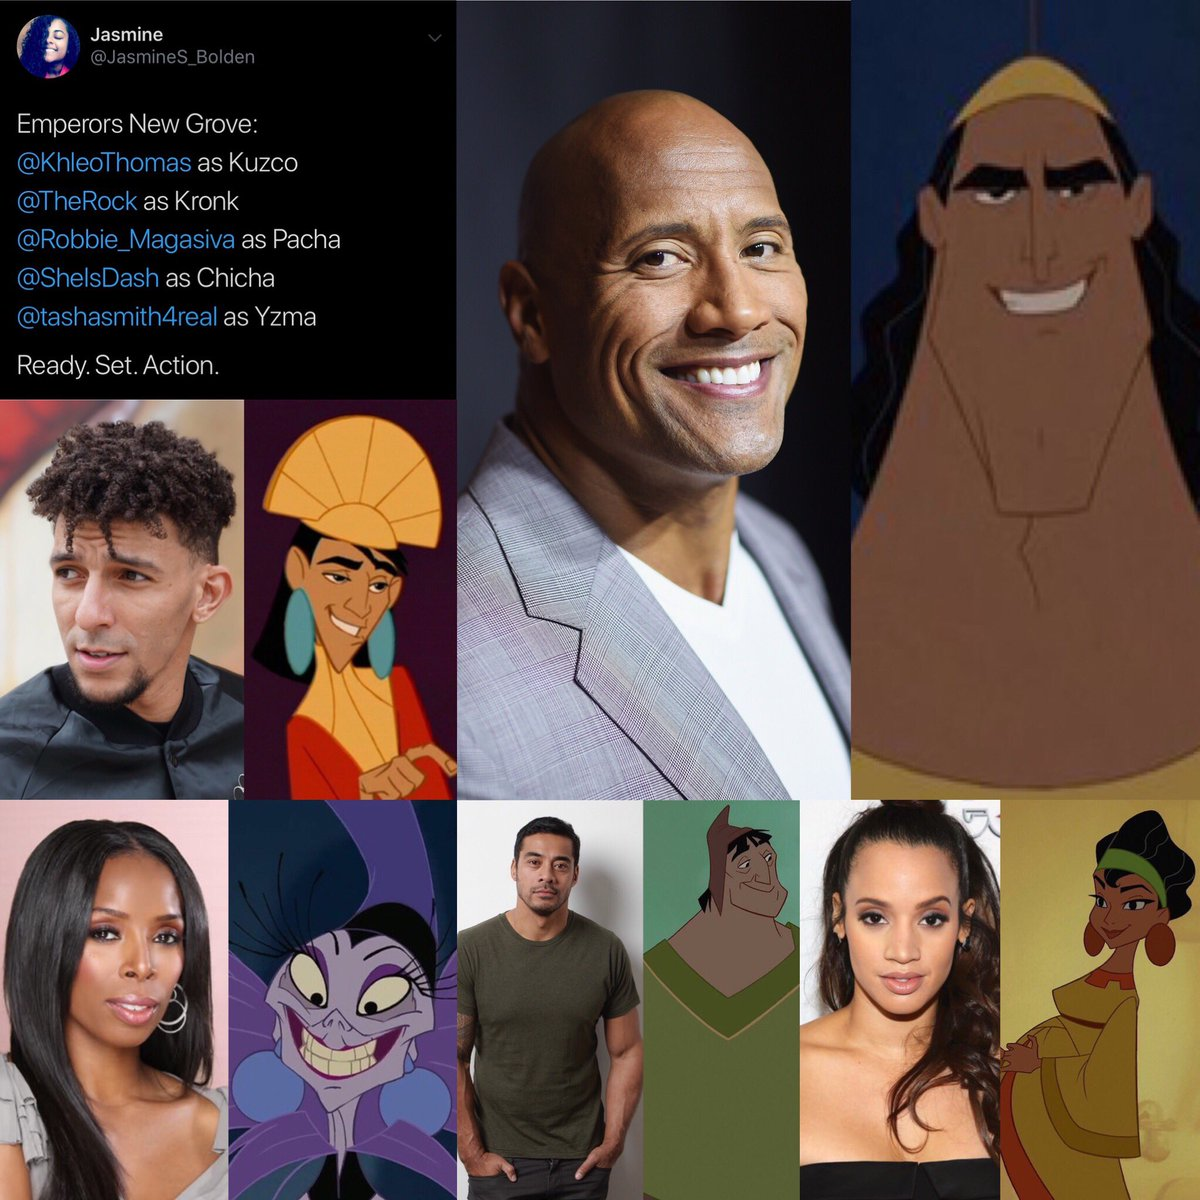 RT @KhleoThomas: The live-action Emperors New Groove cast. Y'all pulling up ? https://t.co/pQopsb87qo